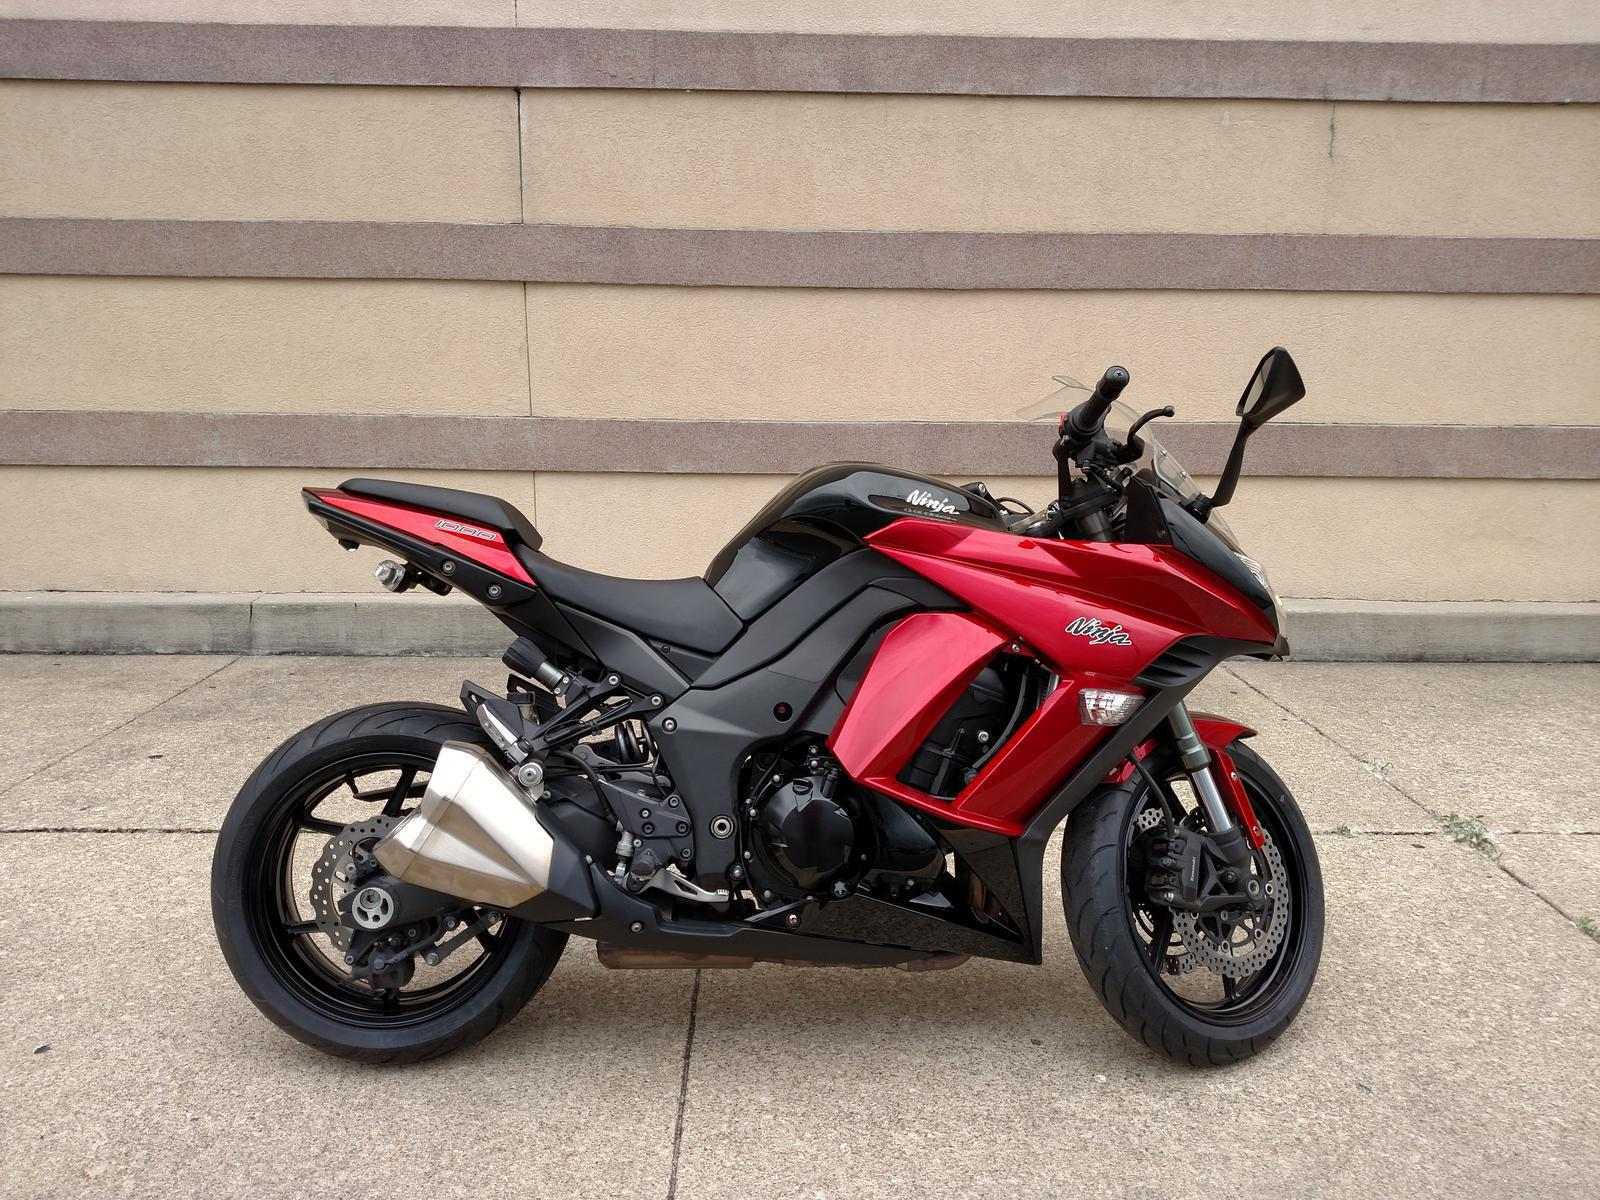 used inventory pony powersports - columbus westerville, oh (877